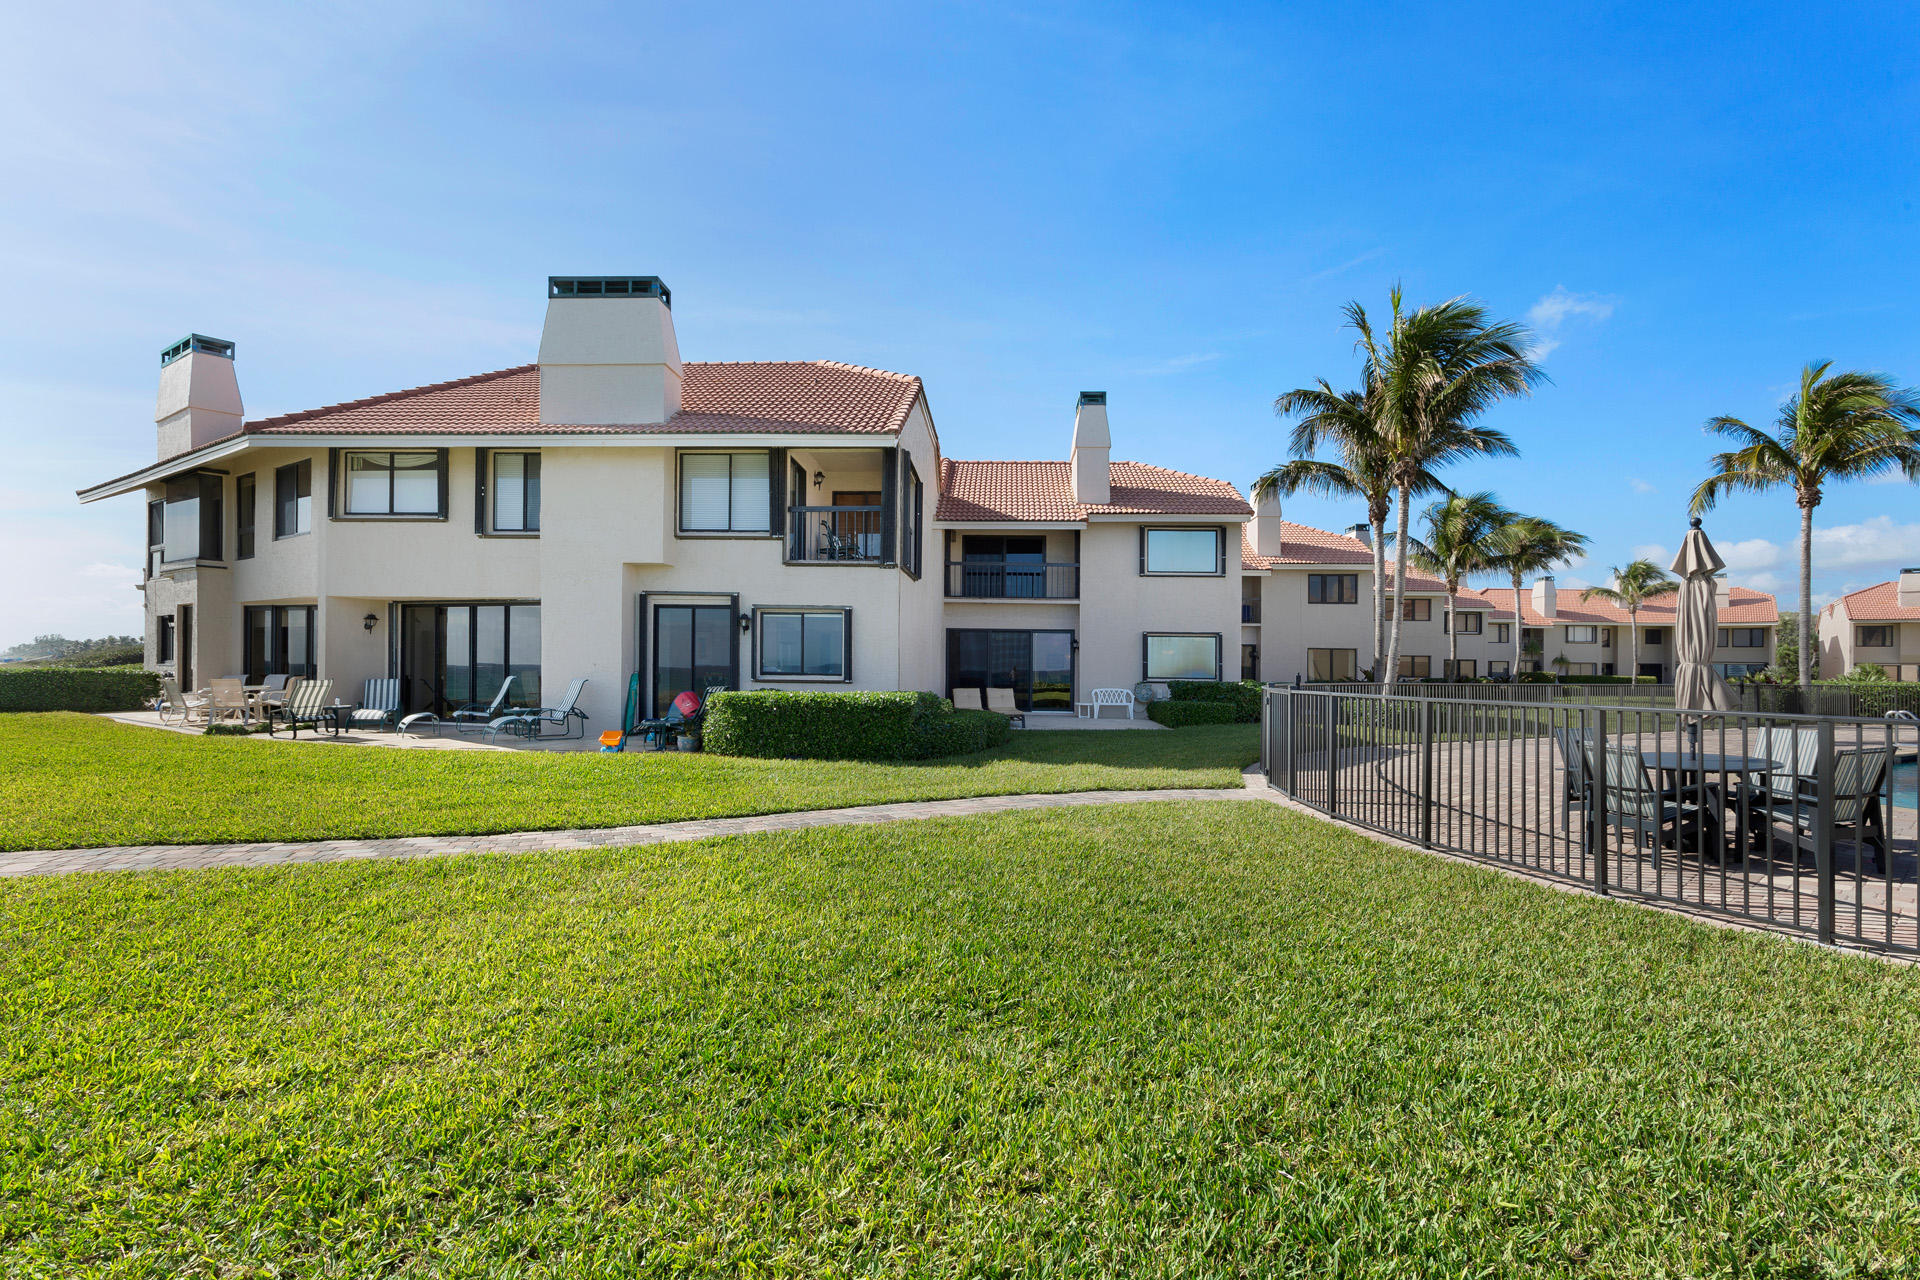 DUNES OF OCEAN RIDGE HOMES